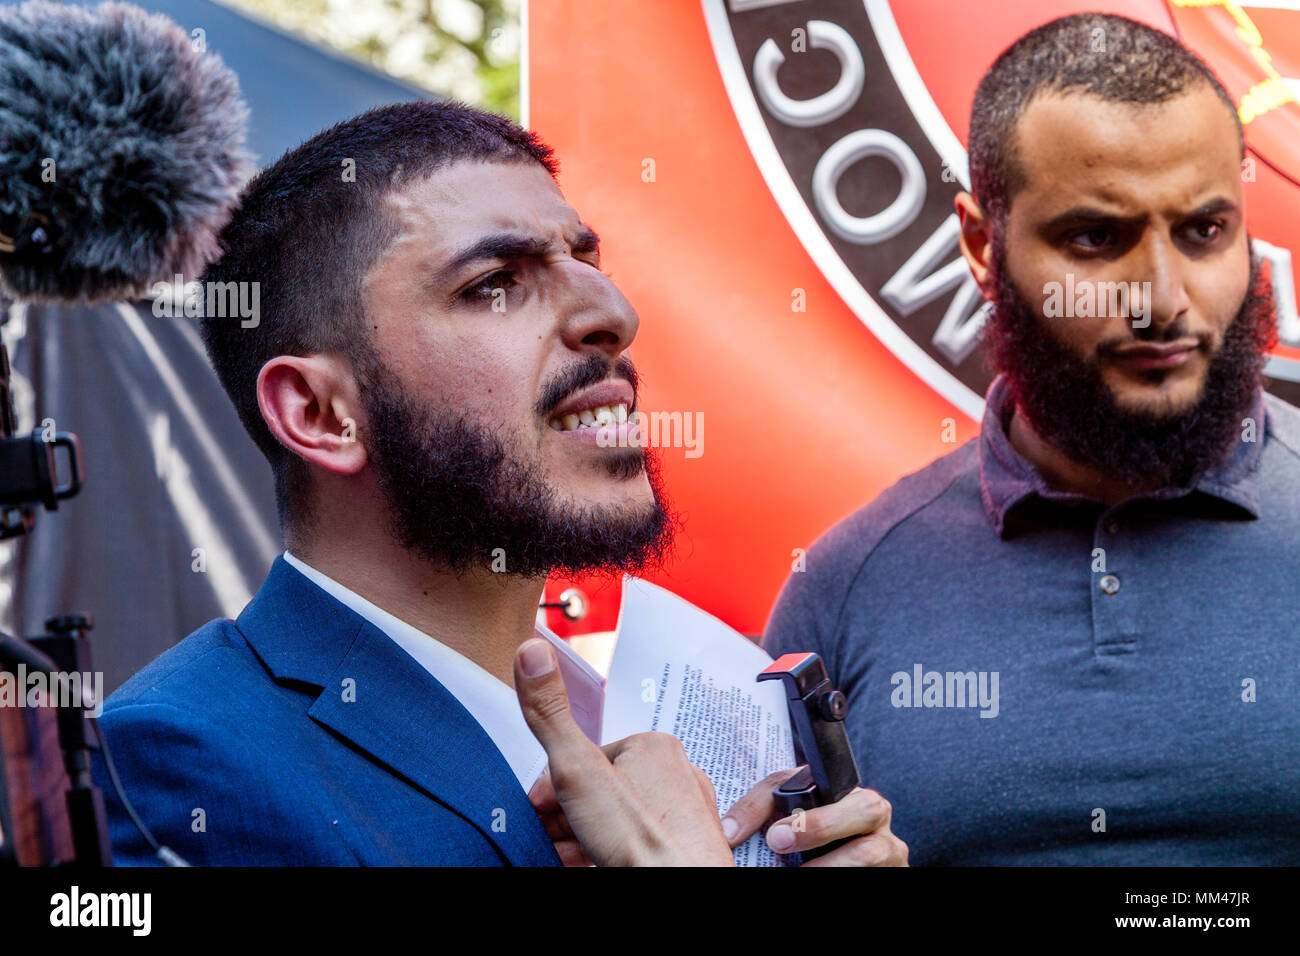 Ali Dawah a prominent Muslim speaker argues for the right to read a speech at the day for freedom rally. London, UK - Stock Image